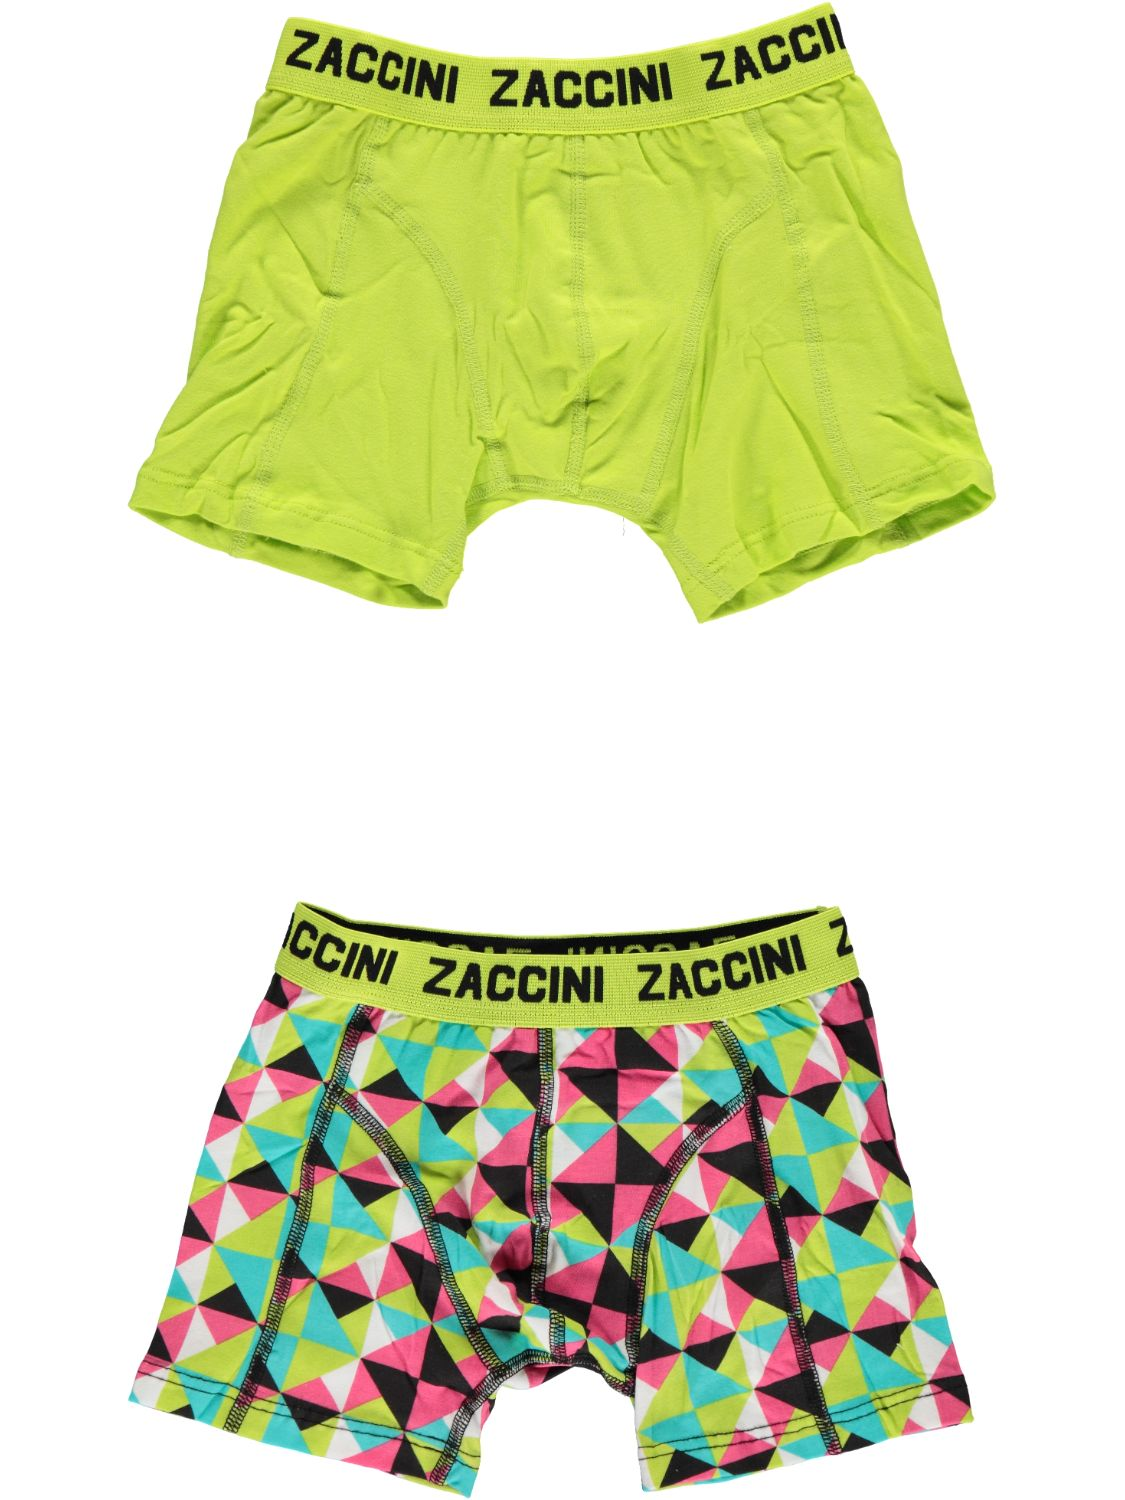 Zaccini Underwear 2-Pack short